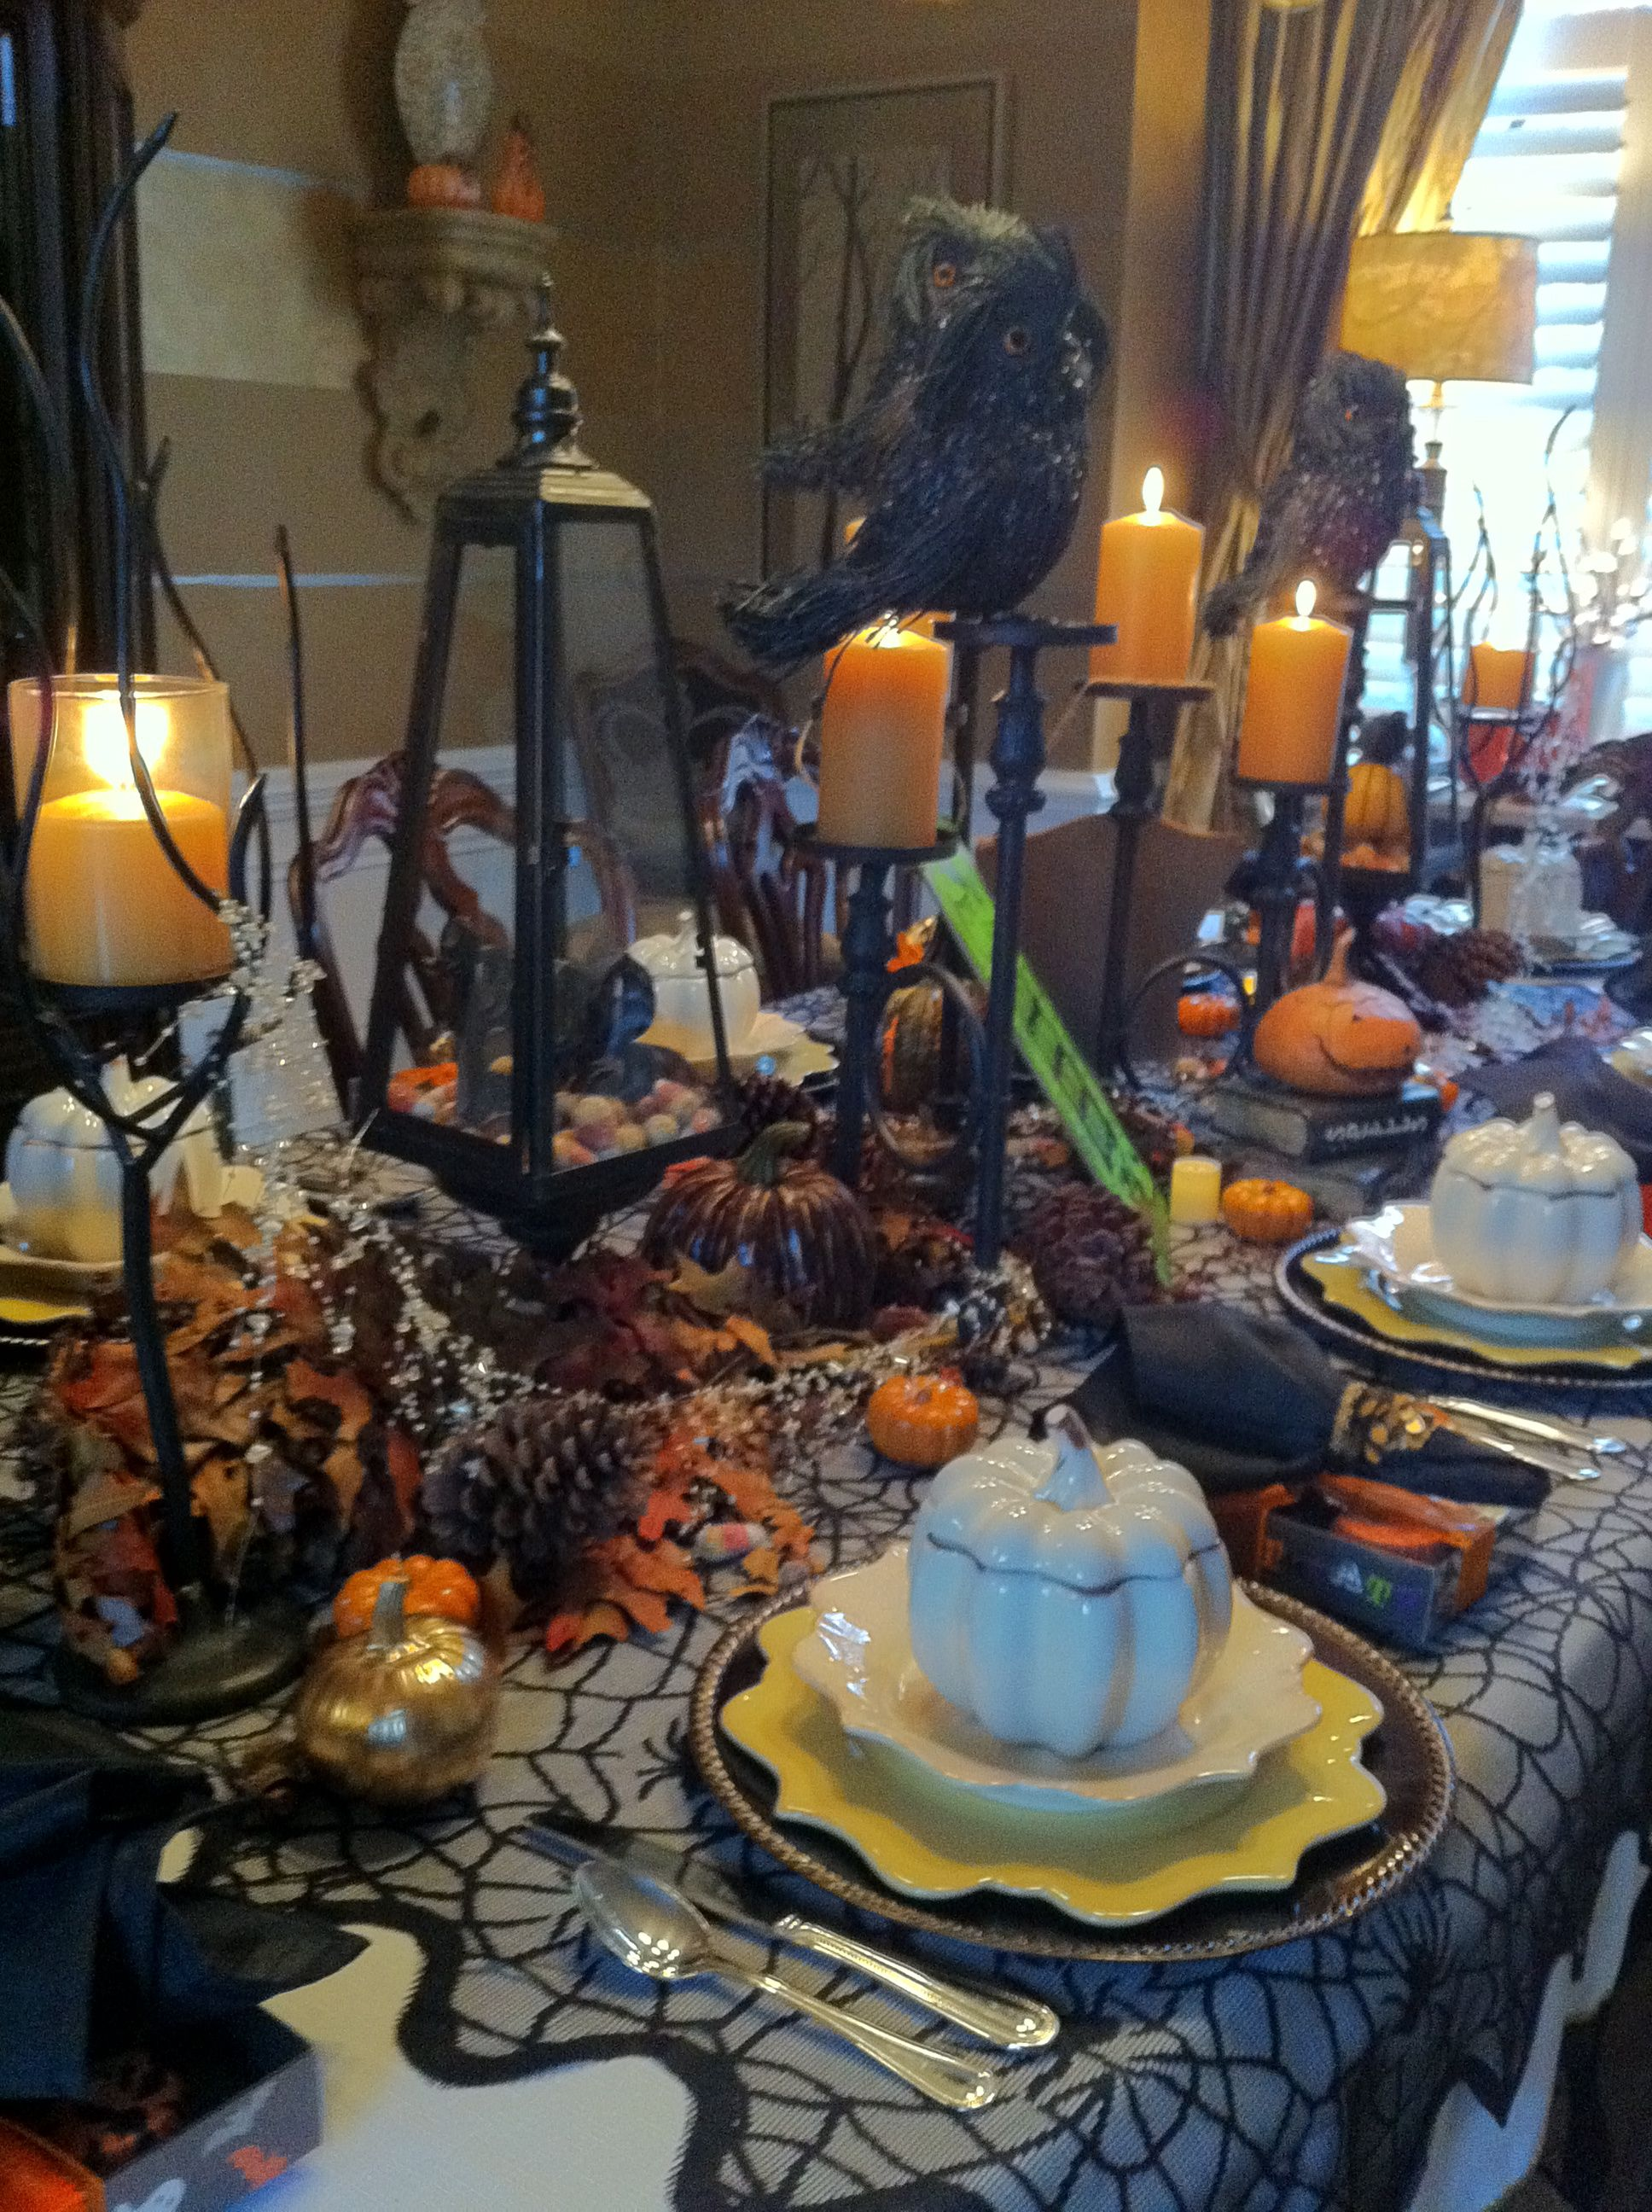 Decoration De Table Pour Halloween Sarahs Halloween Table Spooktacular Celebrations Pinterest